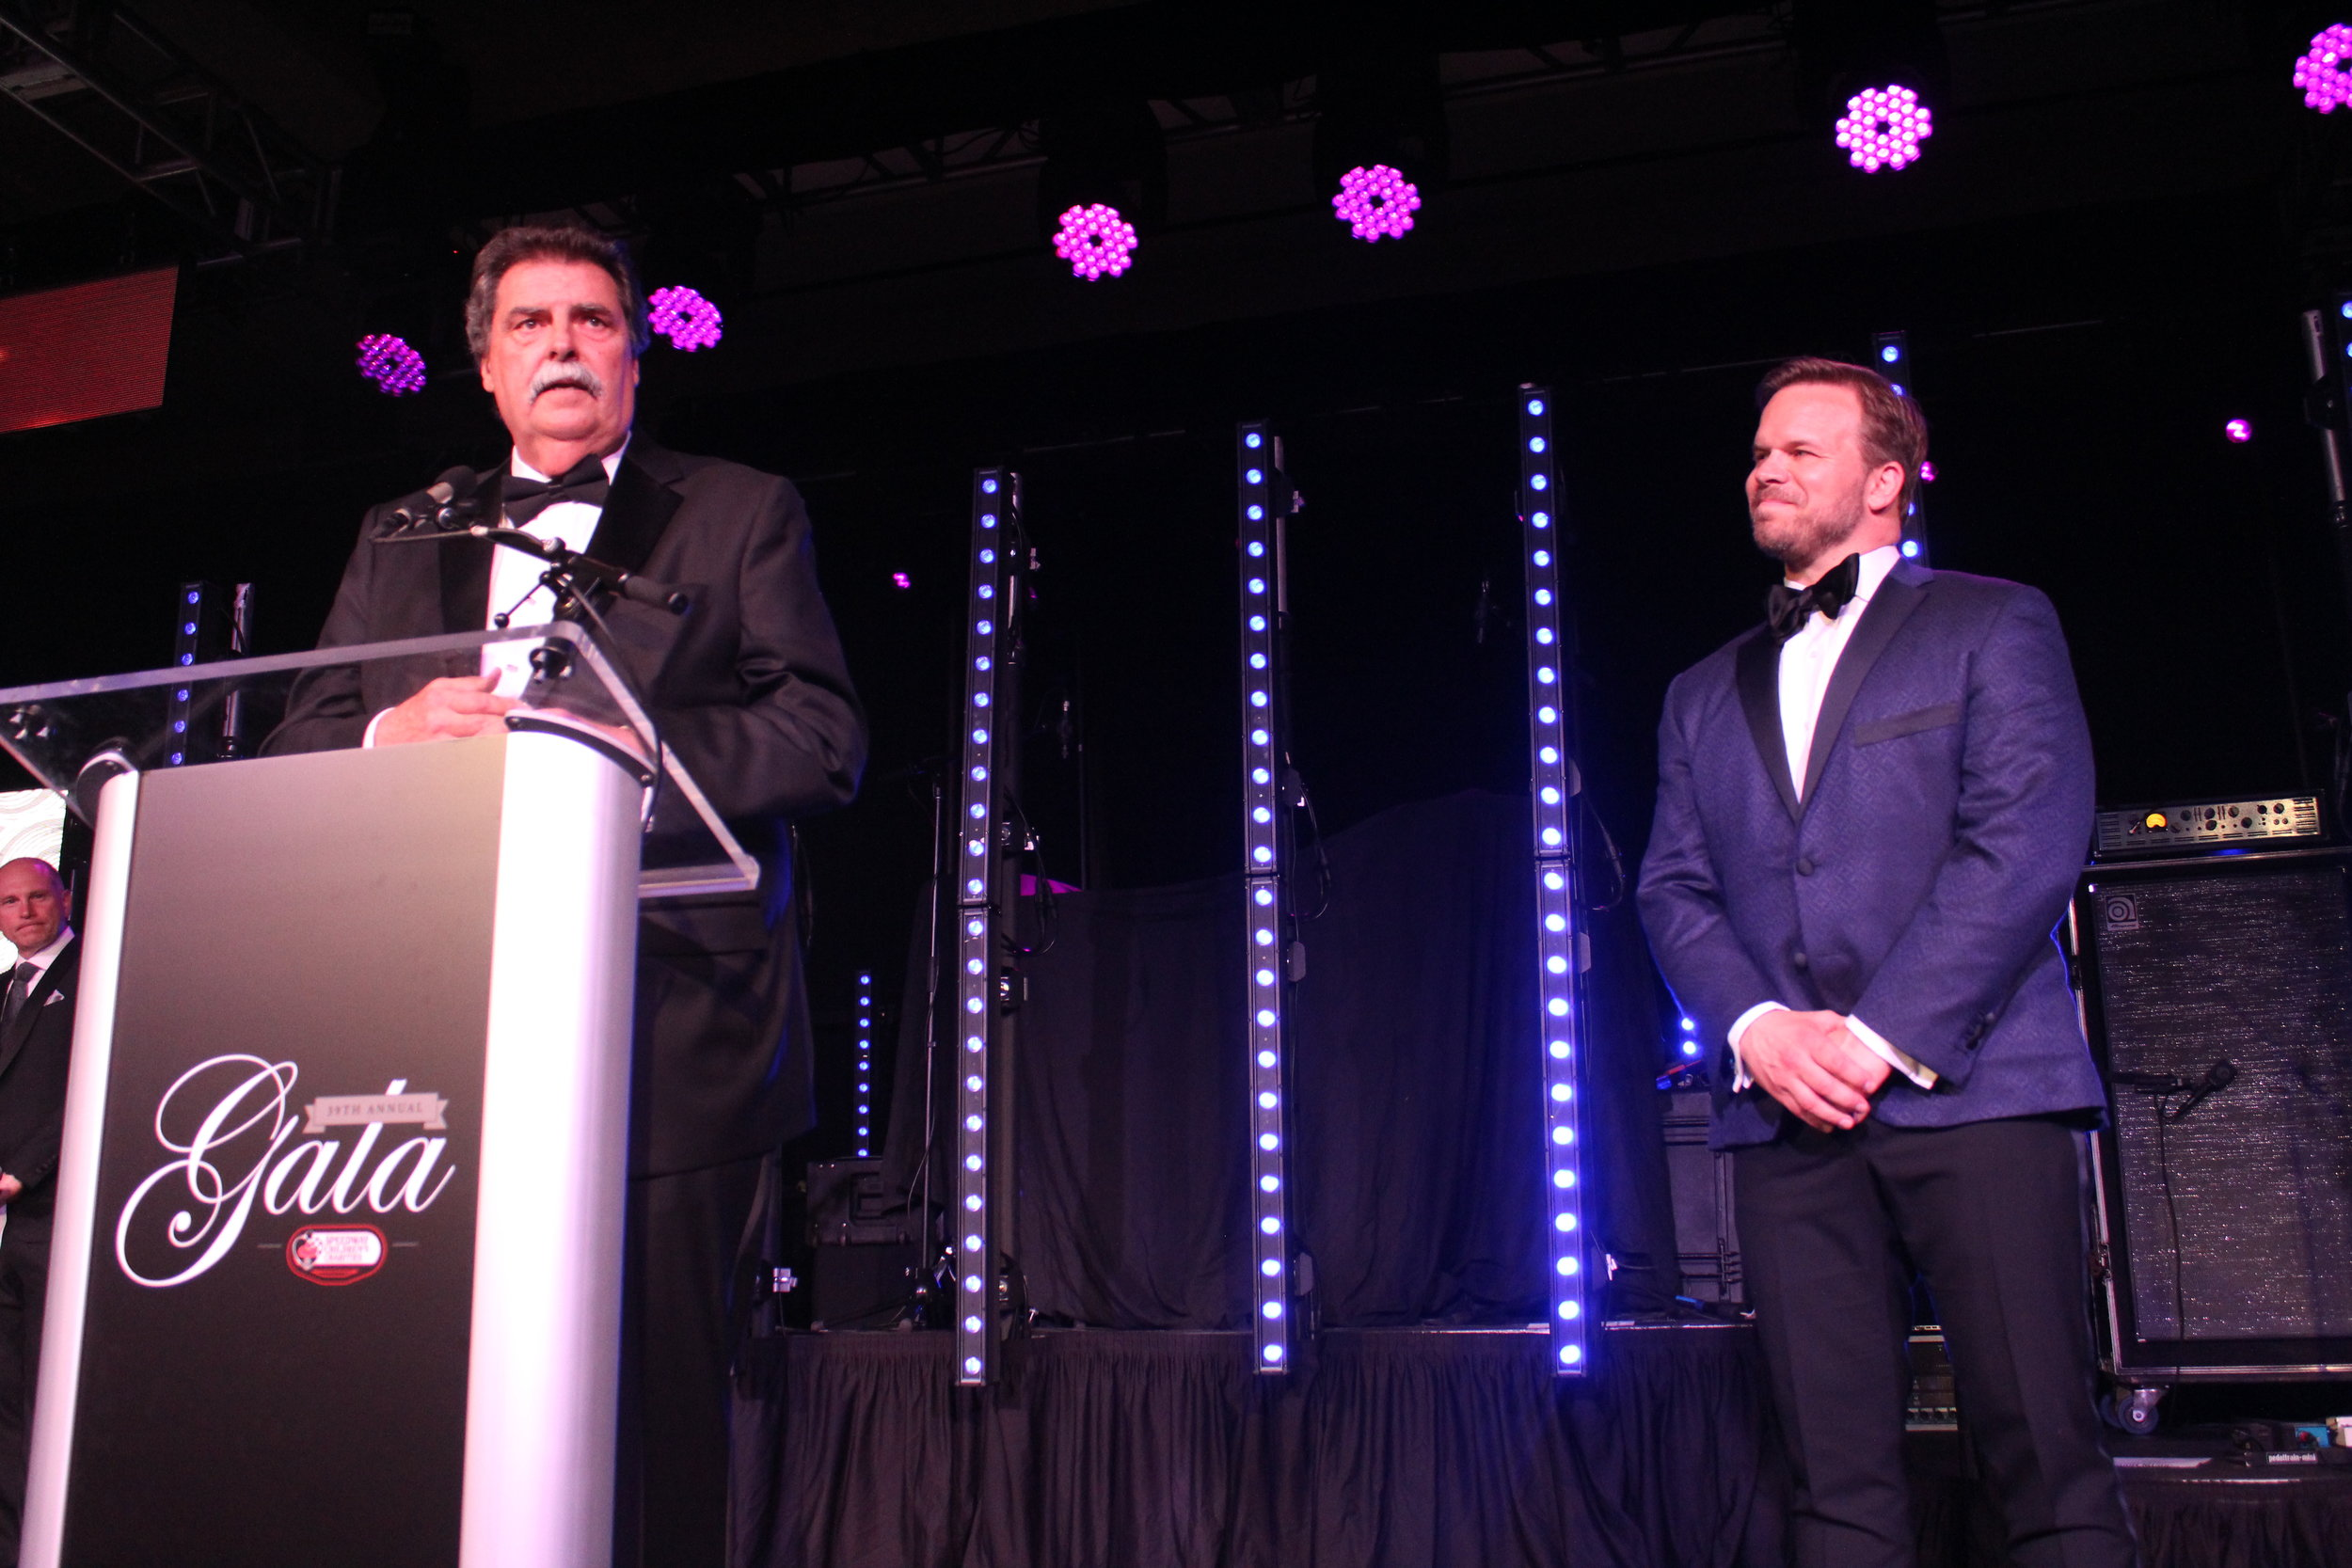 The evening was a tribute to NASCAR Vice Chairman Mike Helton, who was introduced by Marcus Smith.